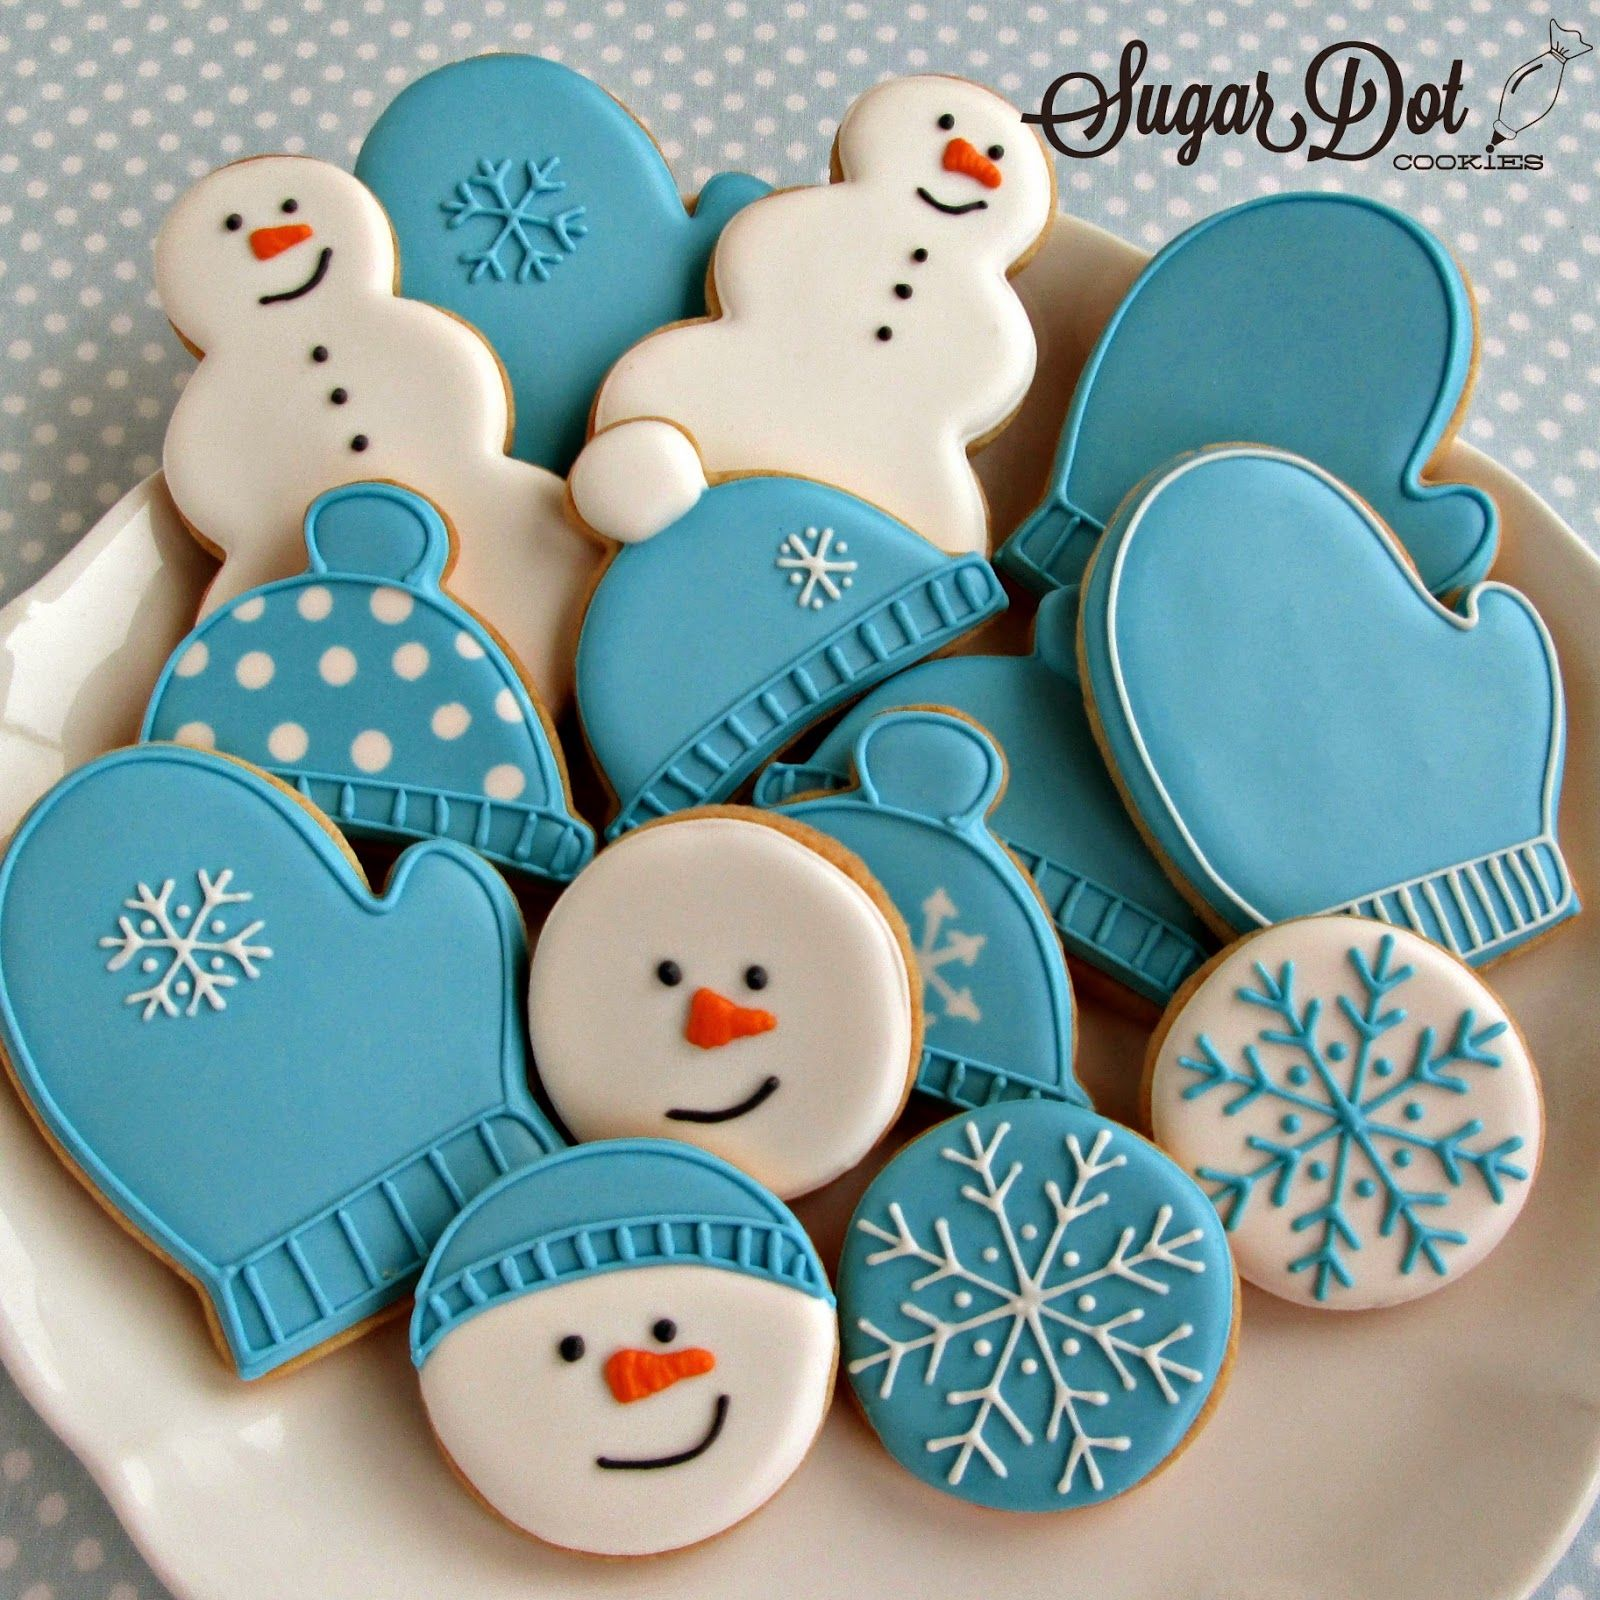 Sugar Dot Cookies: Cookie Decorating Party - January 2015 | Winter ...